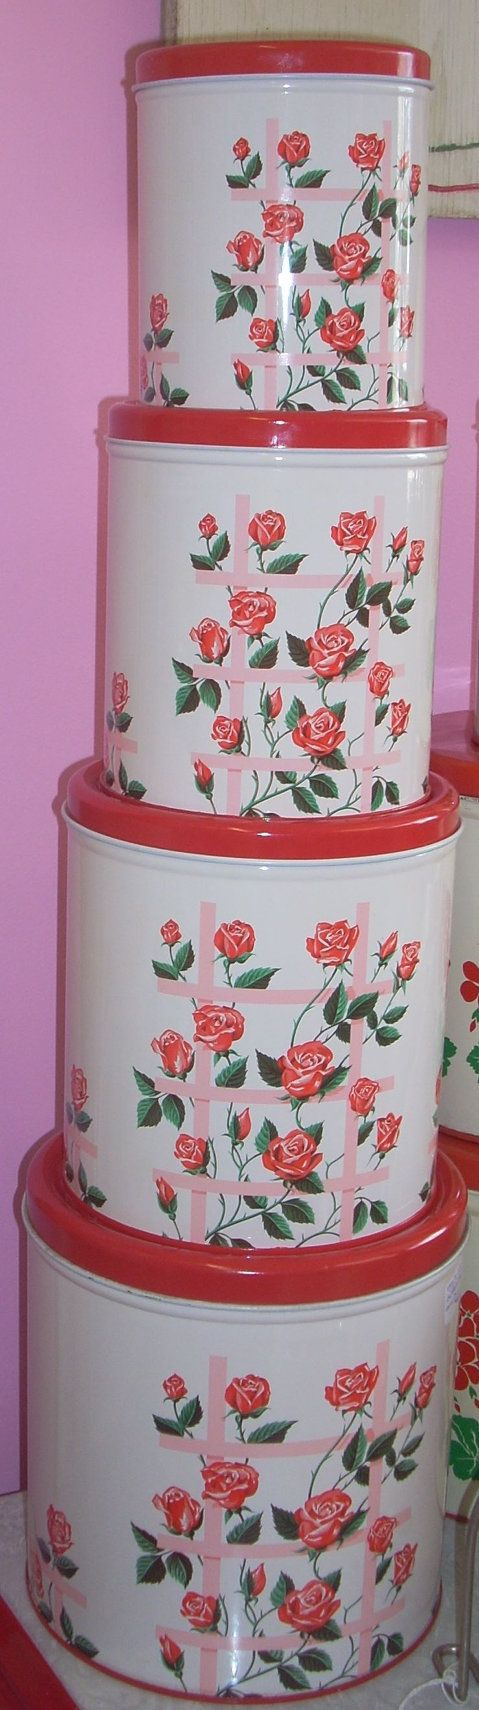 220 best canisters images on pinterest kitchen canisters amazing never used decoware 4 pc nesting tin 68 00 jazz e junque inc in red canistersvintage canisterskitchen canistersvintage